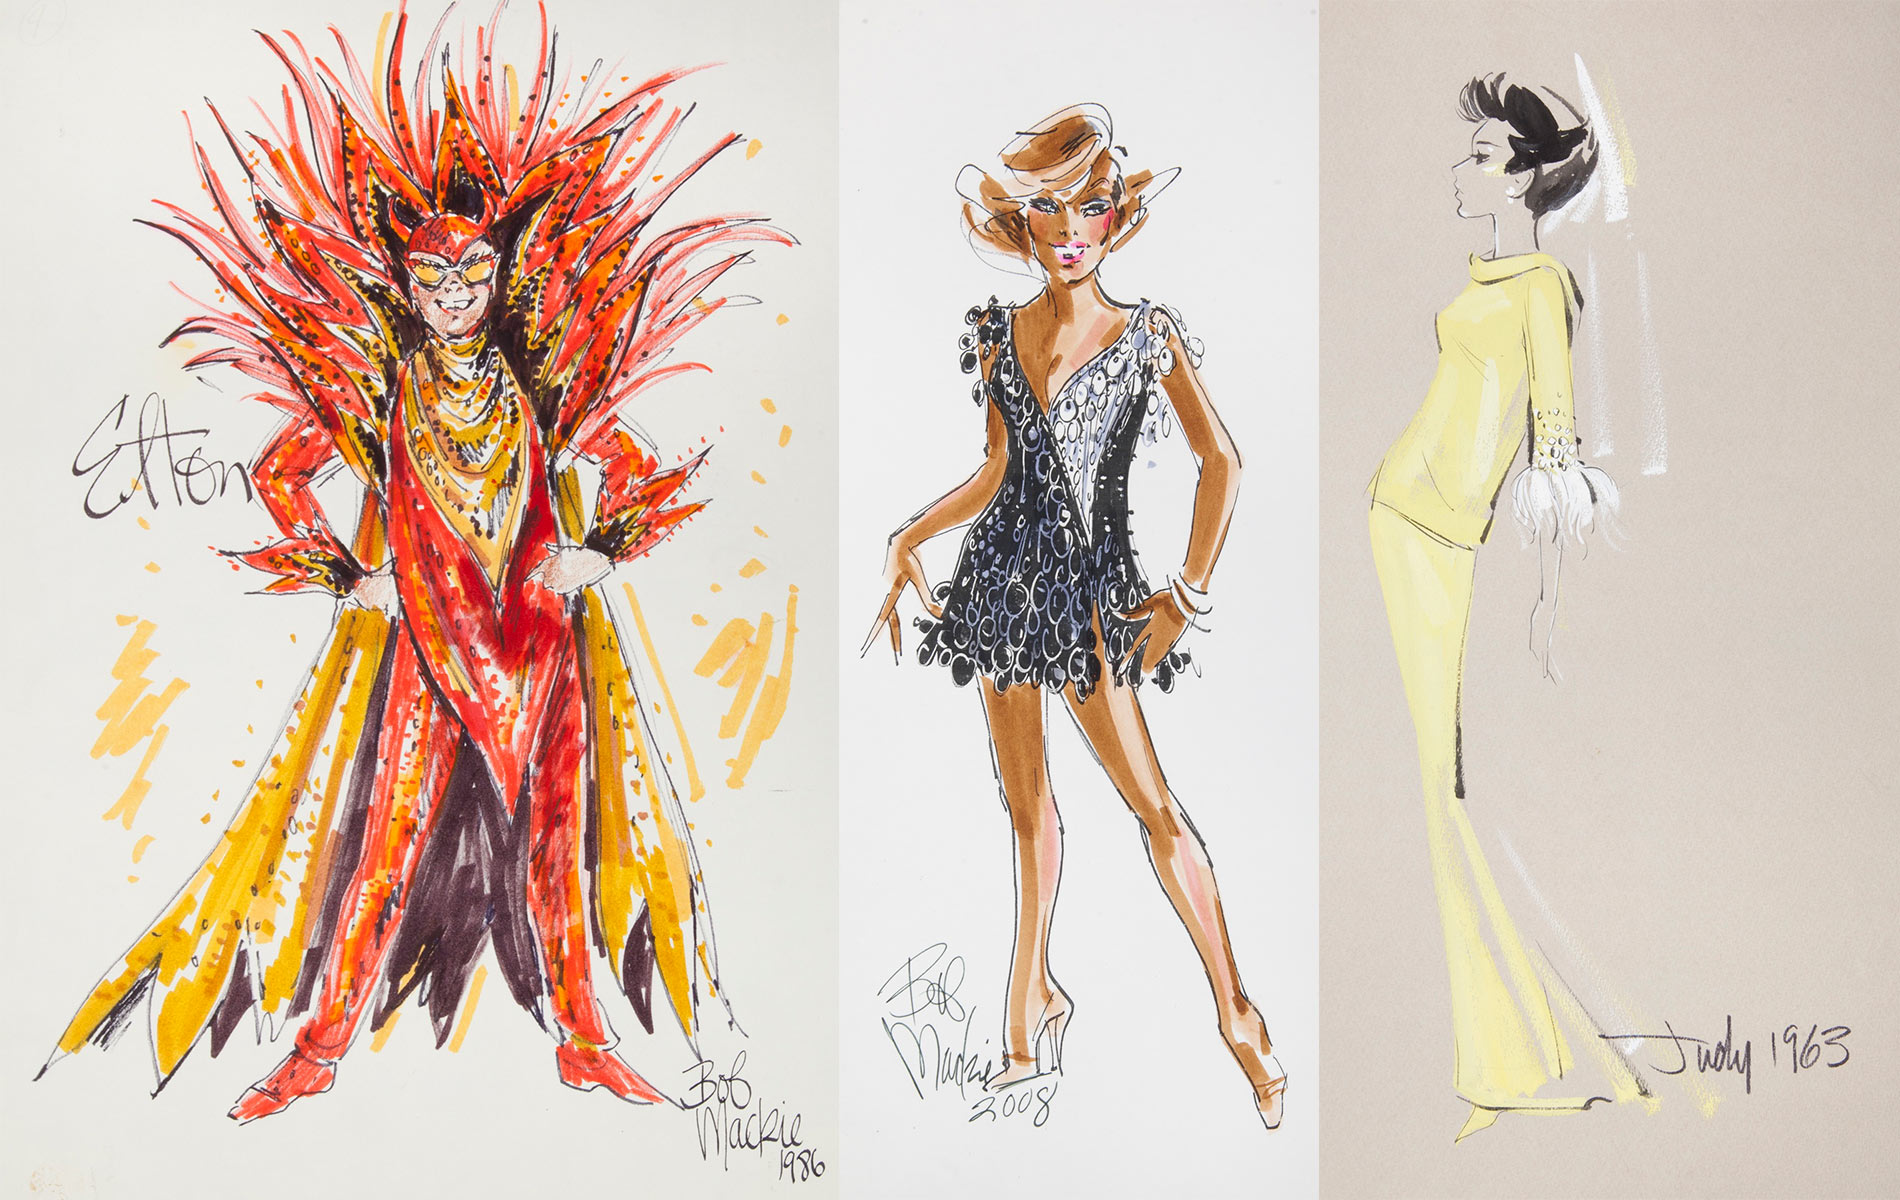 The Bob Mackie Collection at Julien's Auctions will take place November 17, 2018, at the Standard Oil Building in Los Angeles